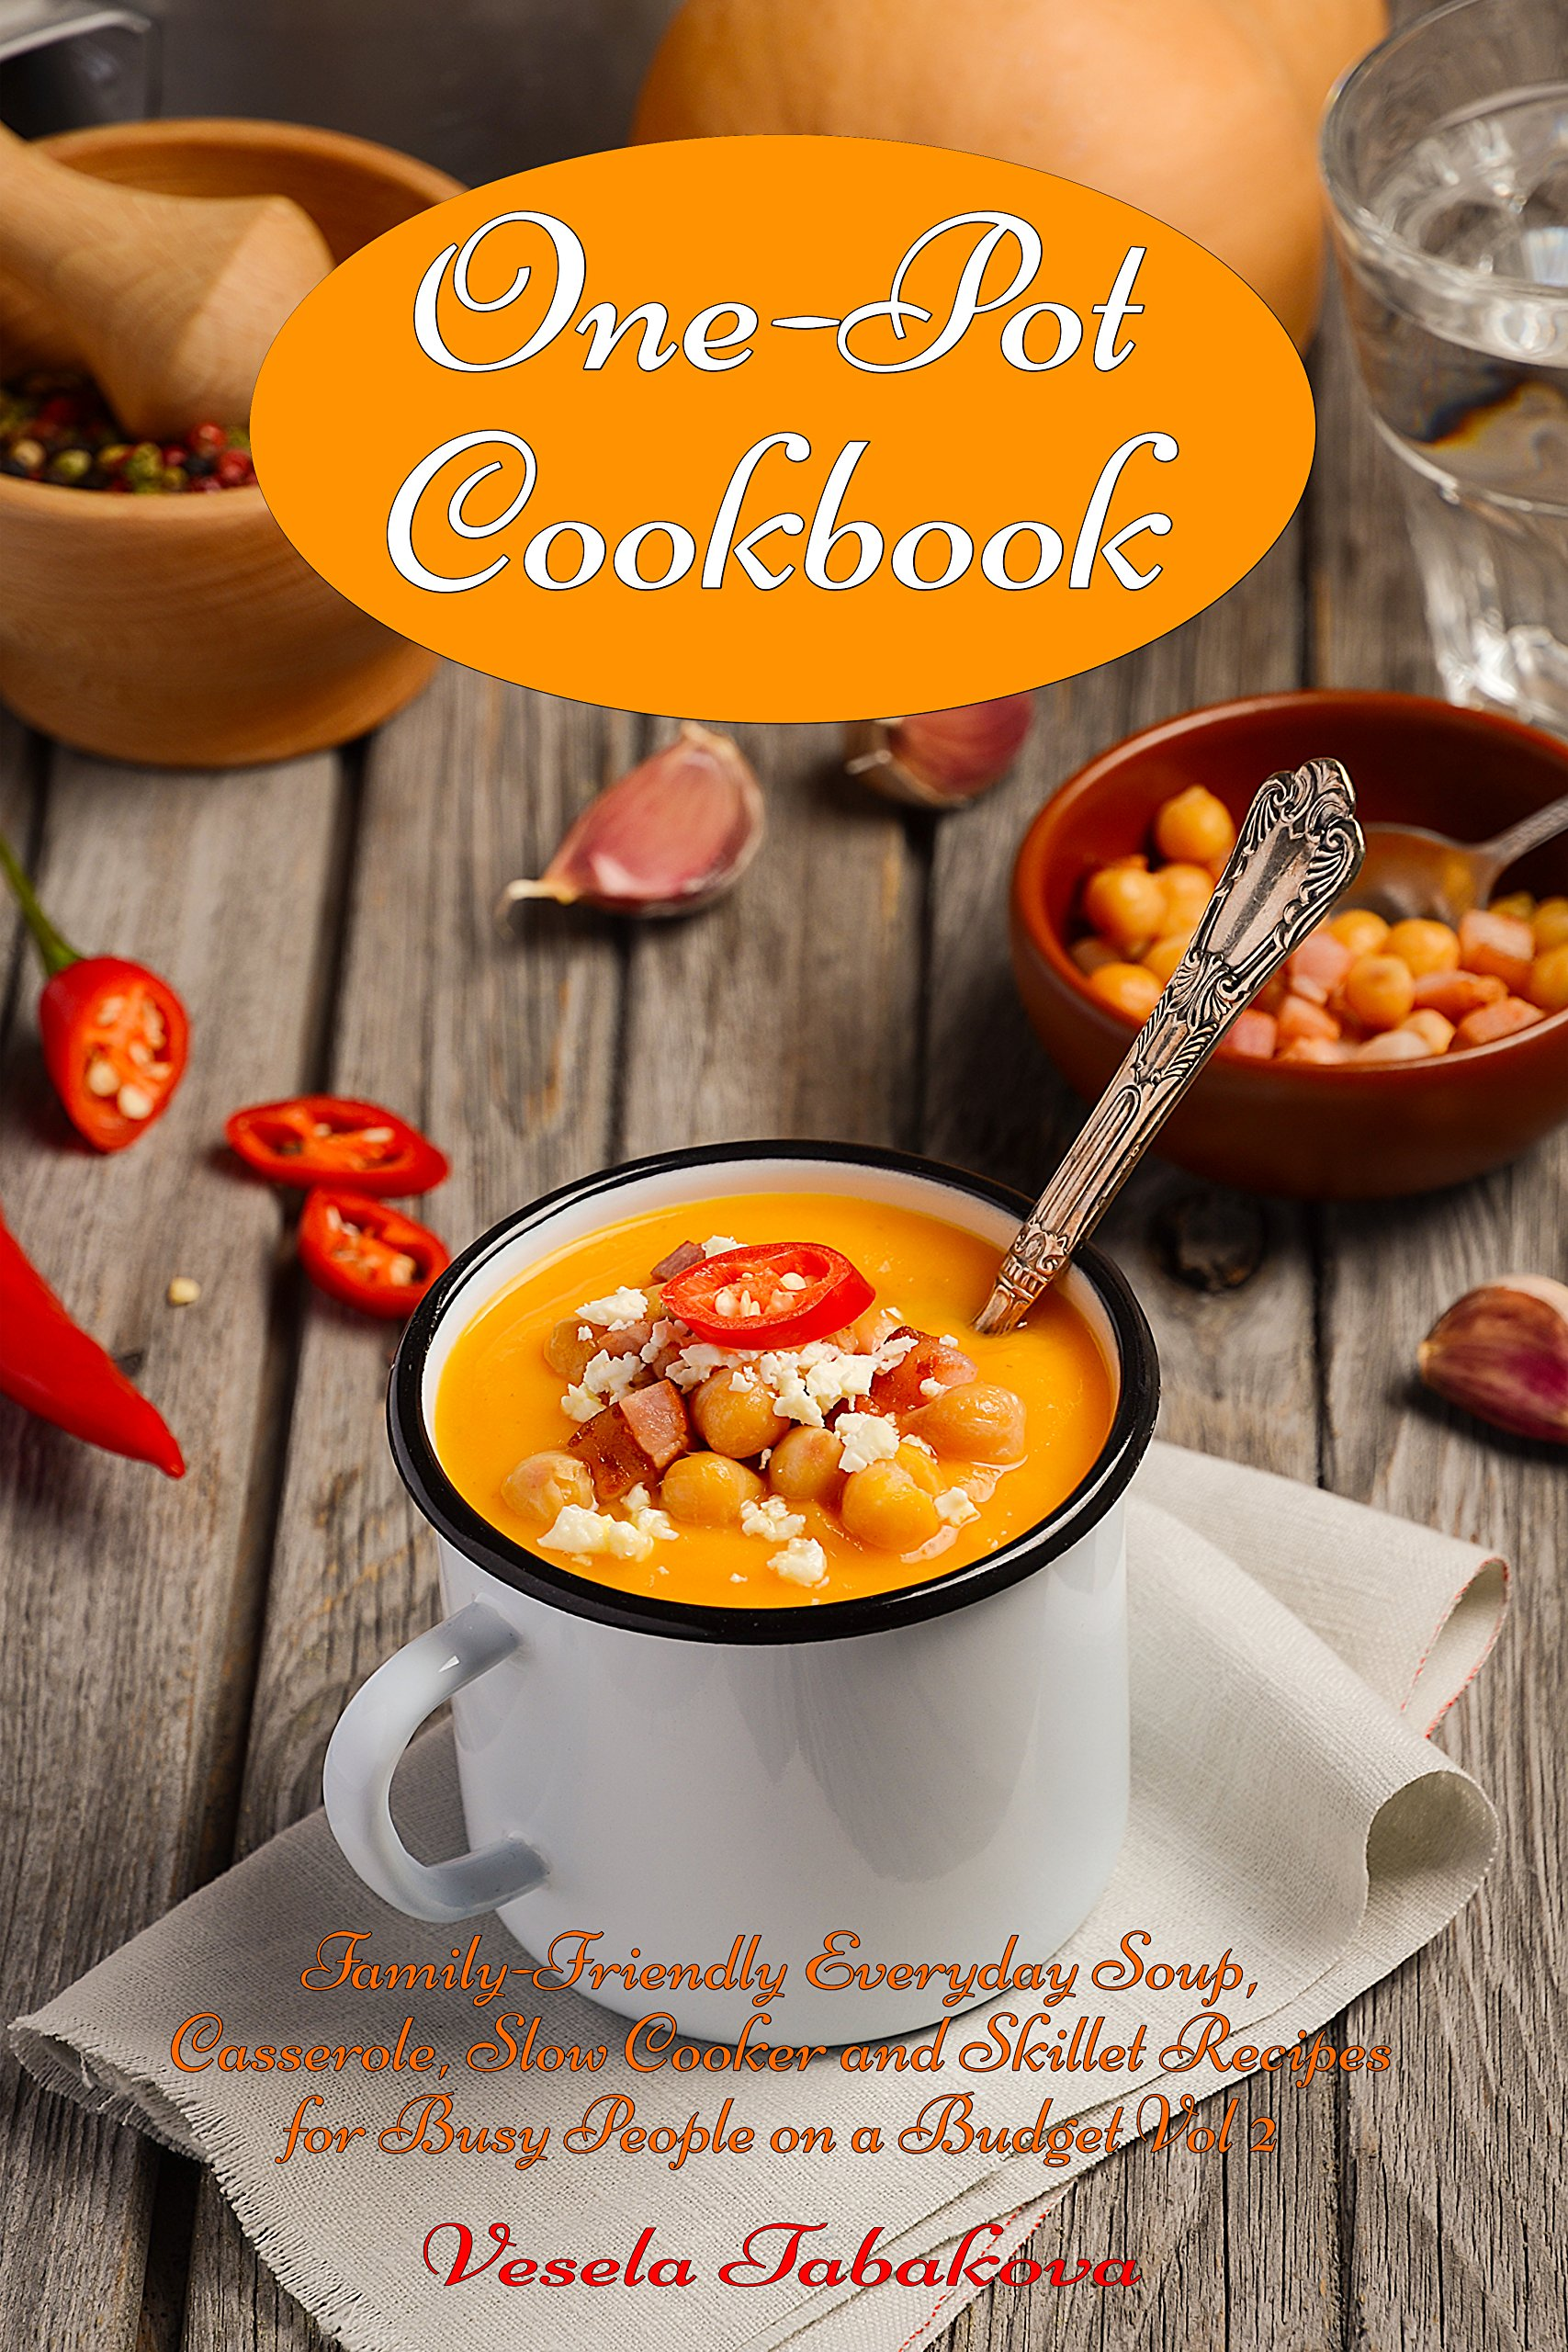 One Pot Cookbook  Family Friendly Everyday Soup Casserole Slow Cooker And Skillet Recipes For Busy People On A Budget Vol 2  Dump Dinners And One Pot ... Cooking And Cookbooks   English Edition